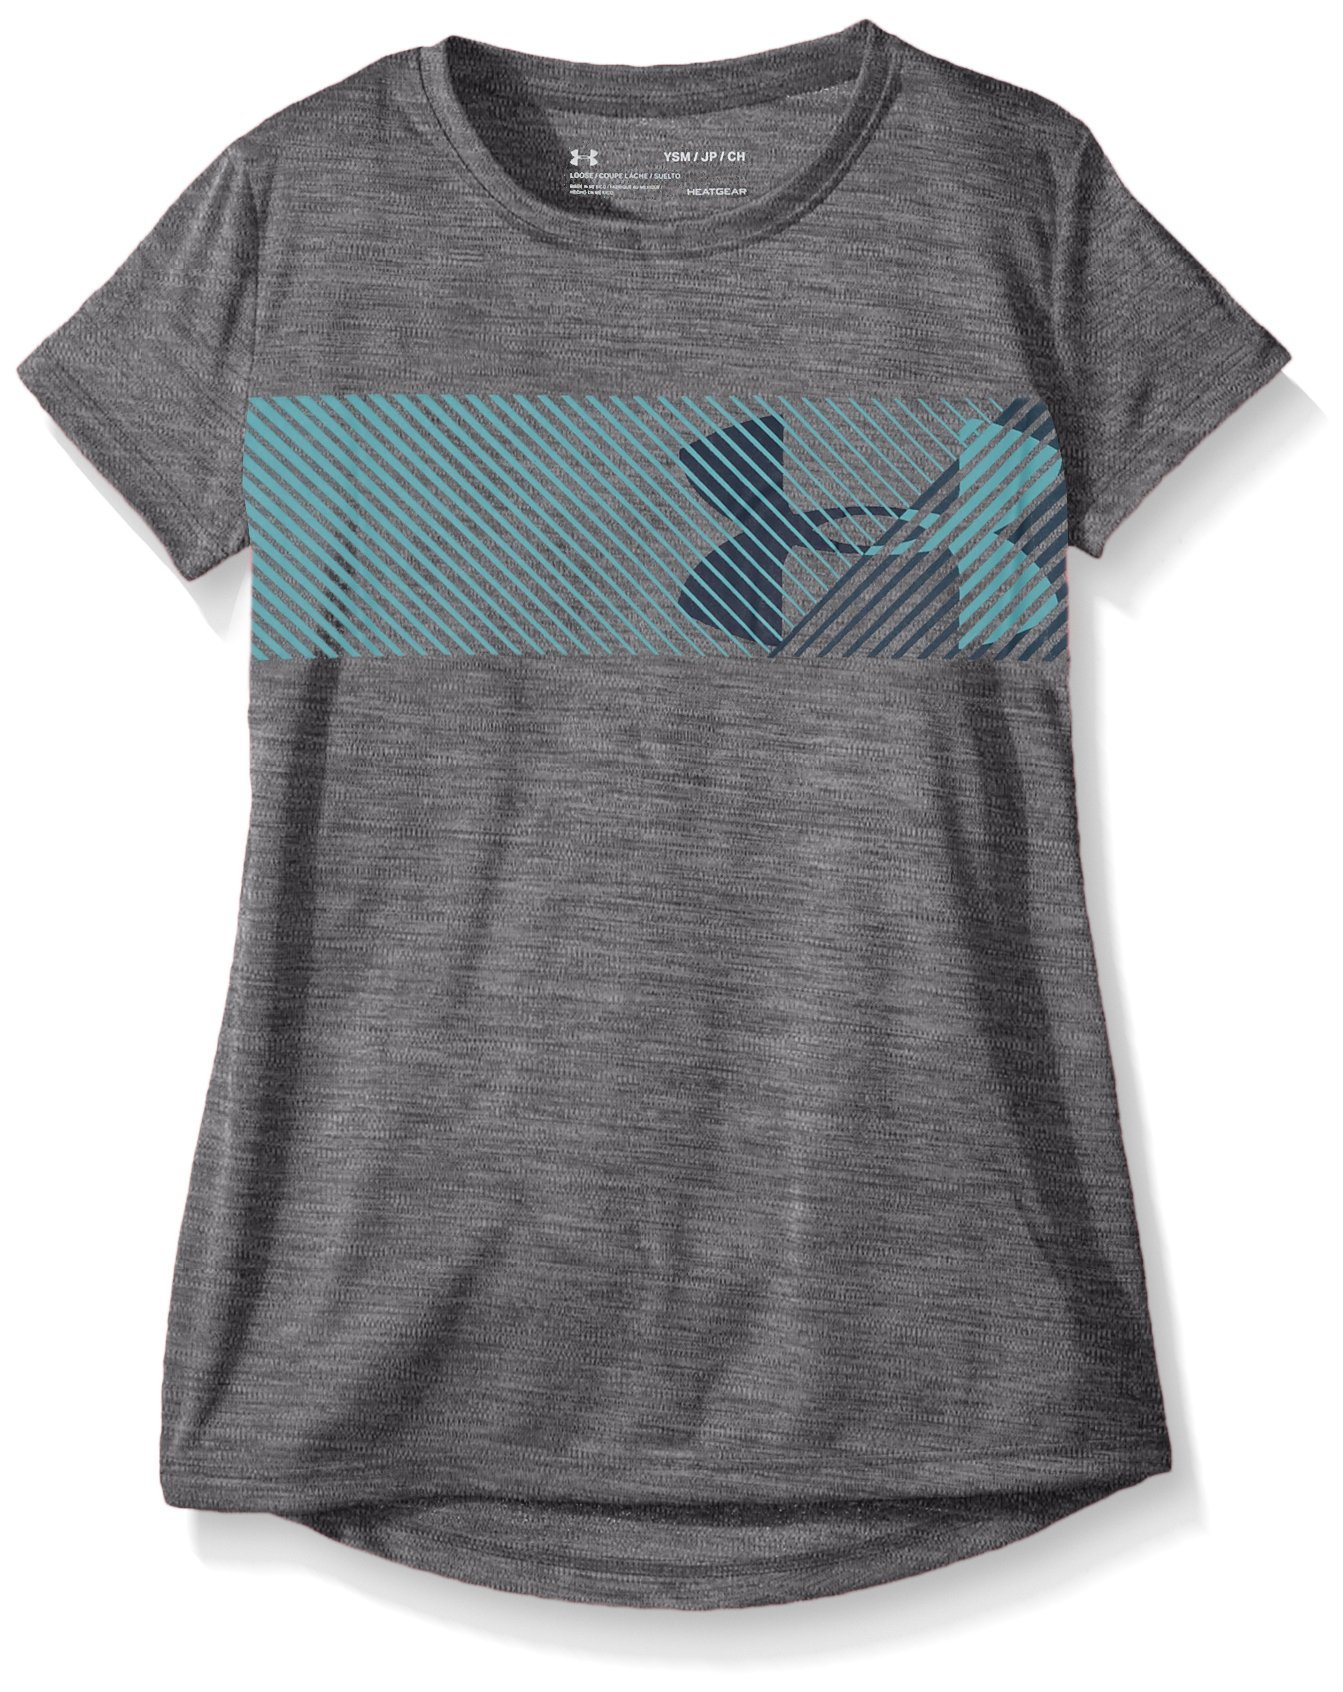 Under Armour Girls' Hybrid Big Logo Tee, Graphite /Tourmaline Teal, Youth X-Small